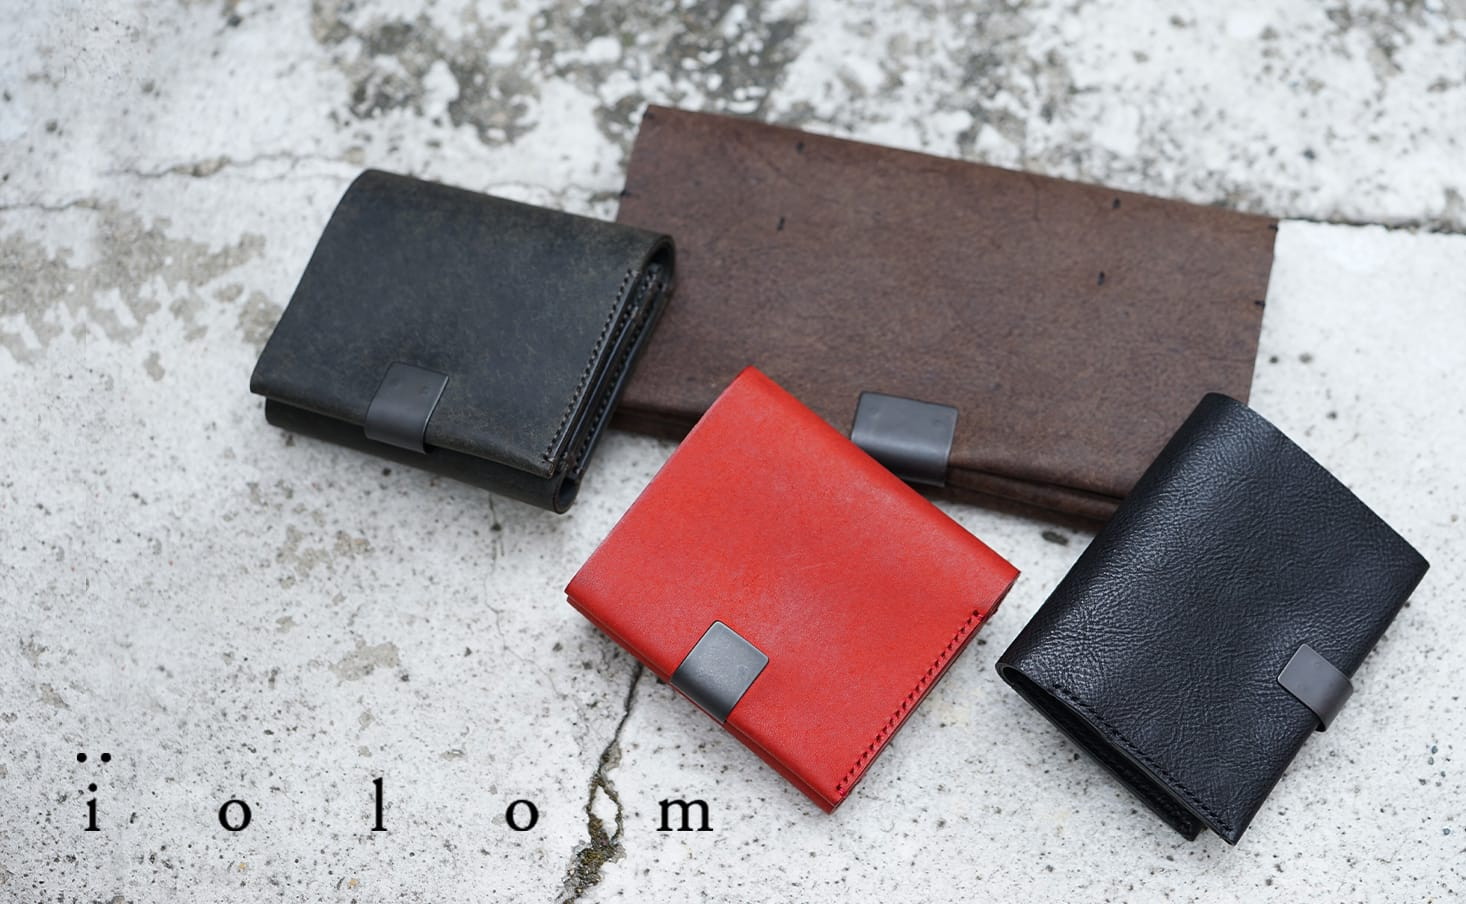 iolom 2019 Spring Summer Collection